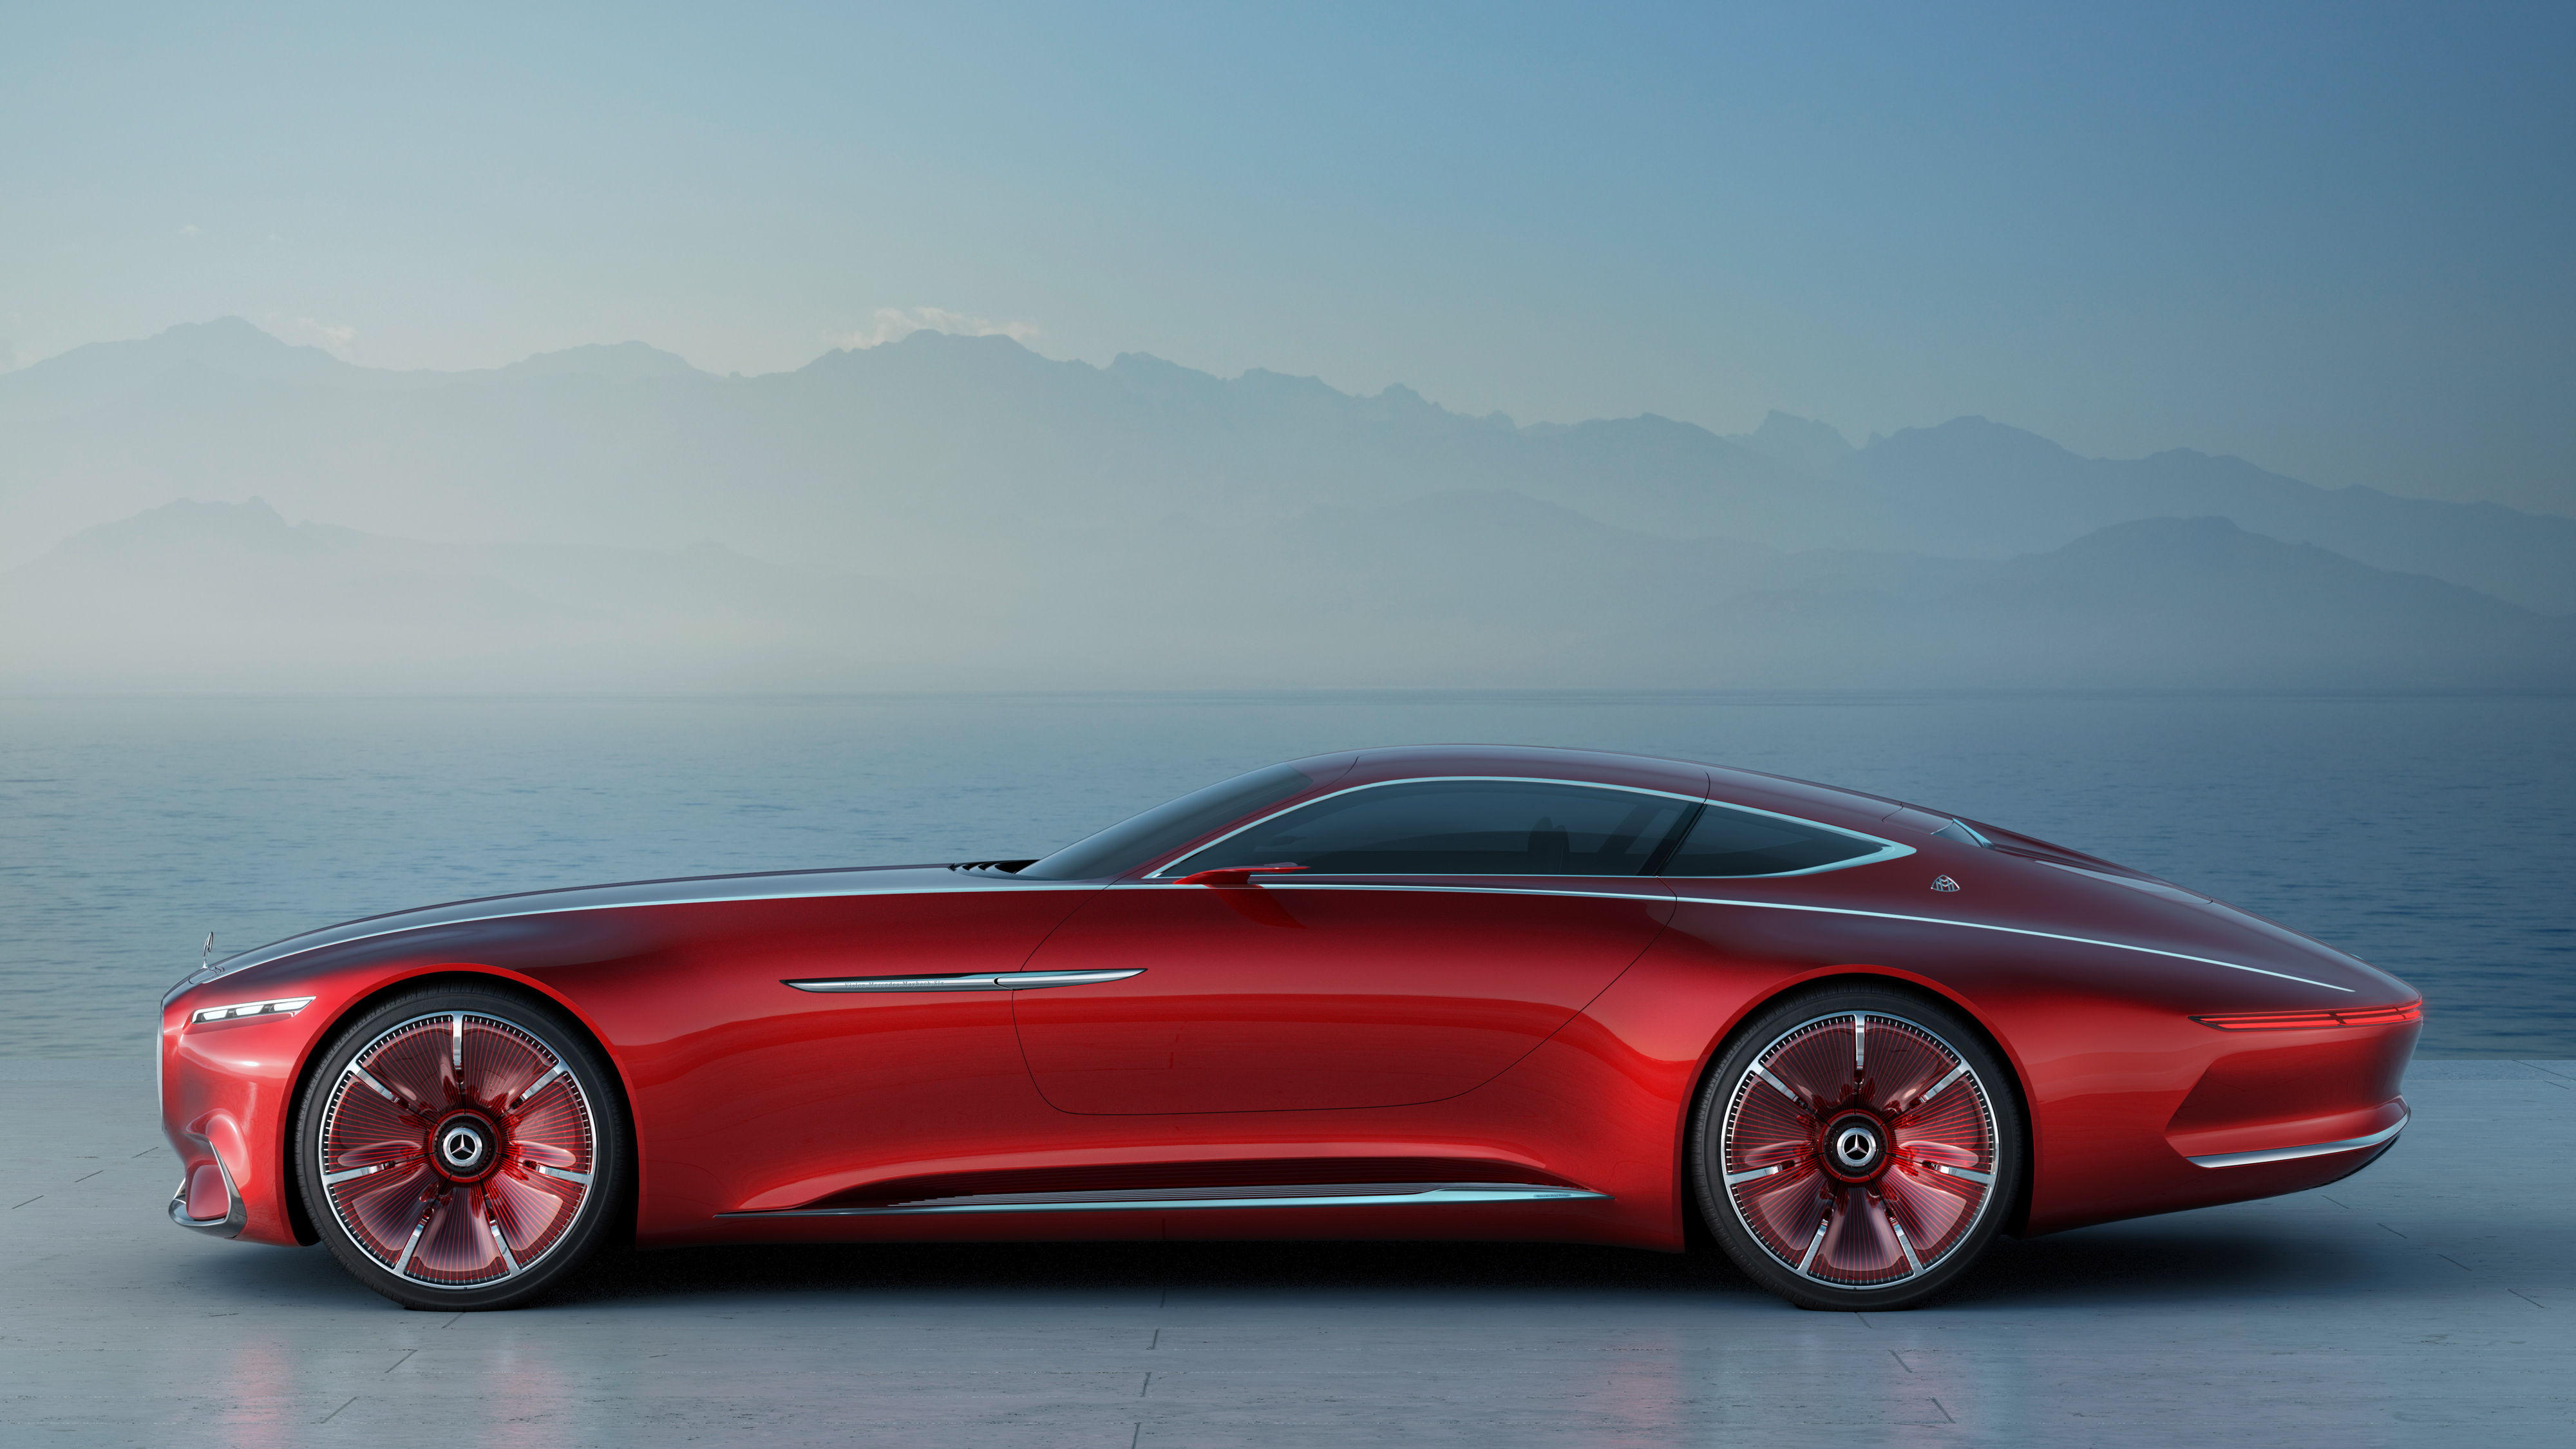 """Mercedes' next vehicle is a 20-foot luxury electric Maybach that you'll """"want to drive yourself"""""""